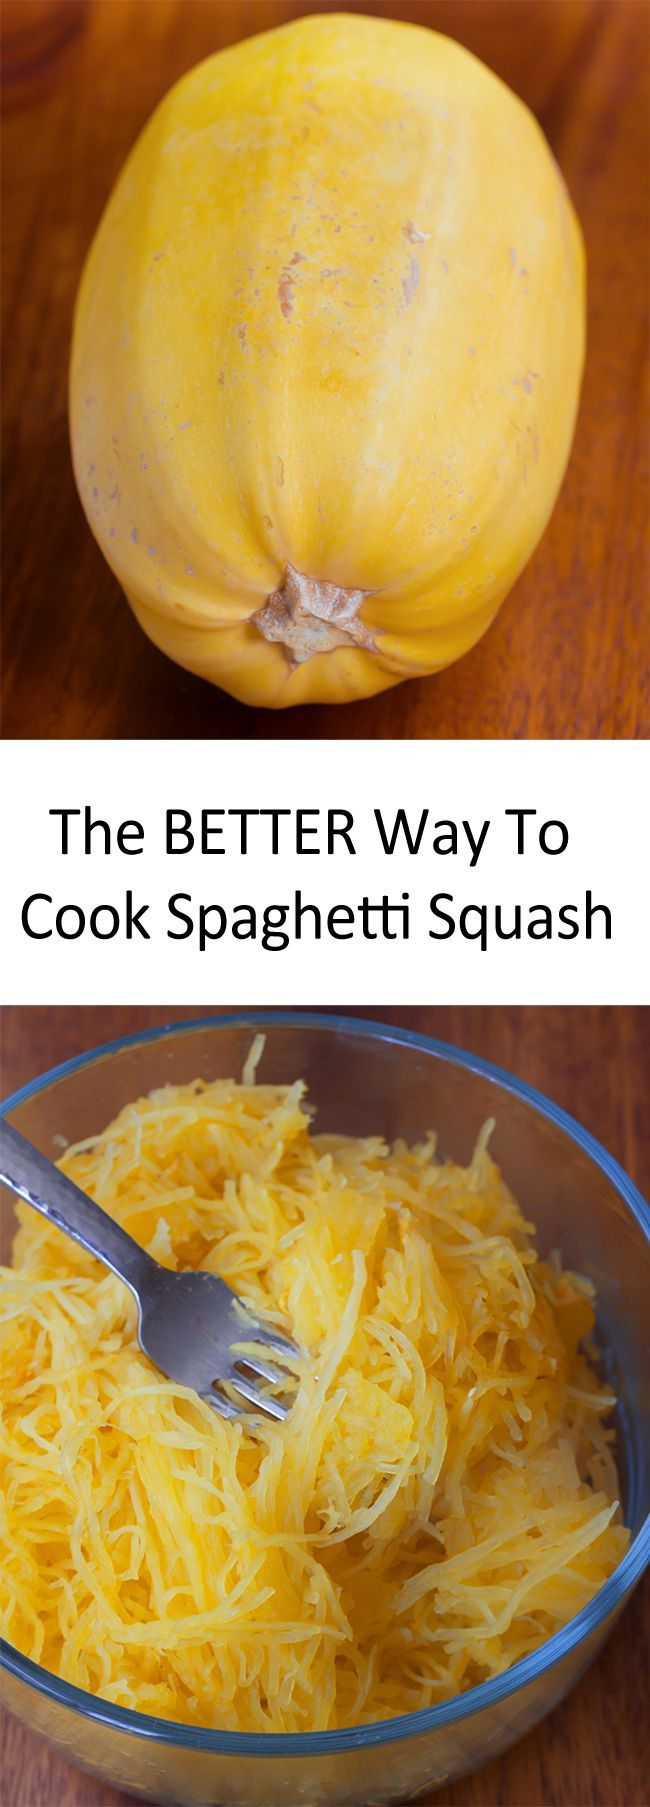 Try this one EASY trick the next time you cook spaghetti squash - The difference in taste & texture is incredible! Full recipe: http://chocolatecoveredkatie.com/2016/02/15/how-to-cook-spaghetti-squash-oven-microwave/ /choccoveredkt/